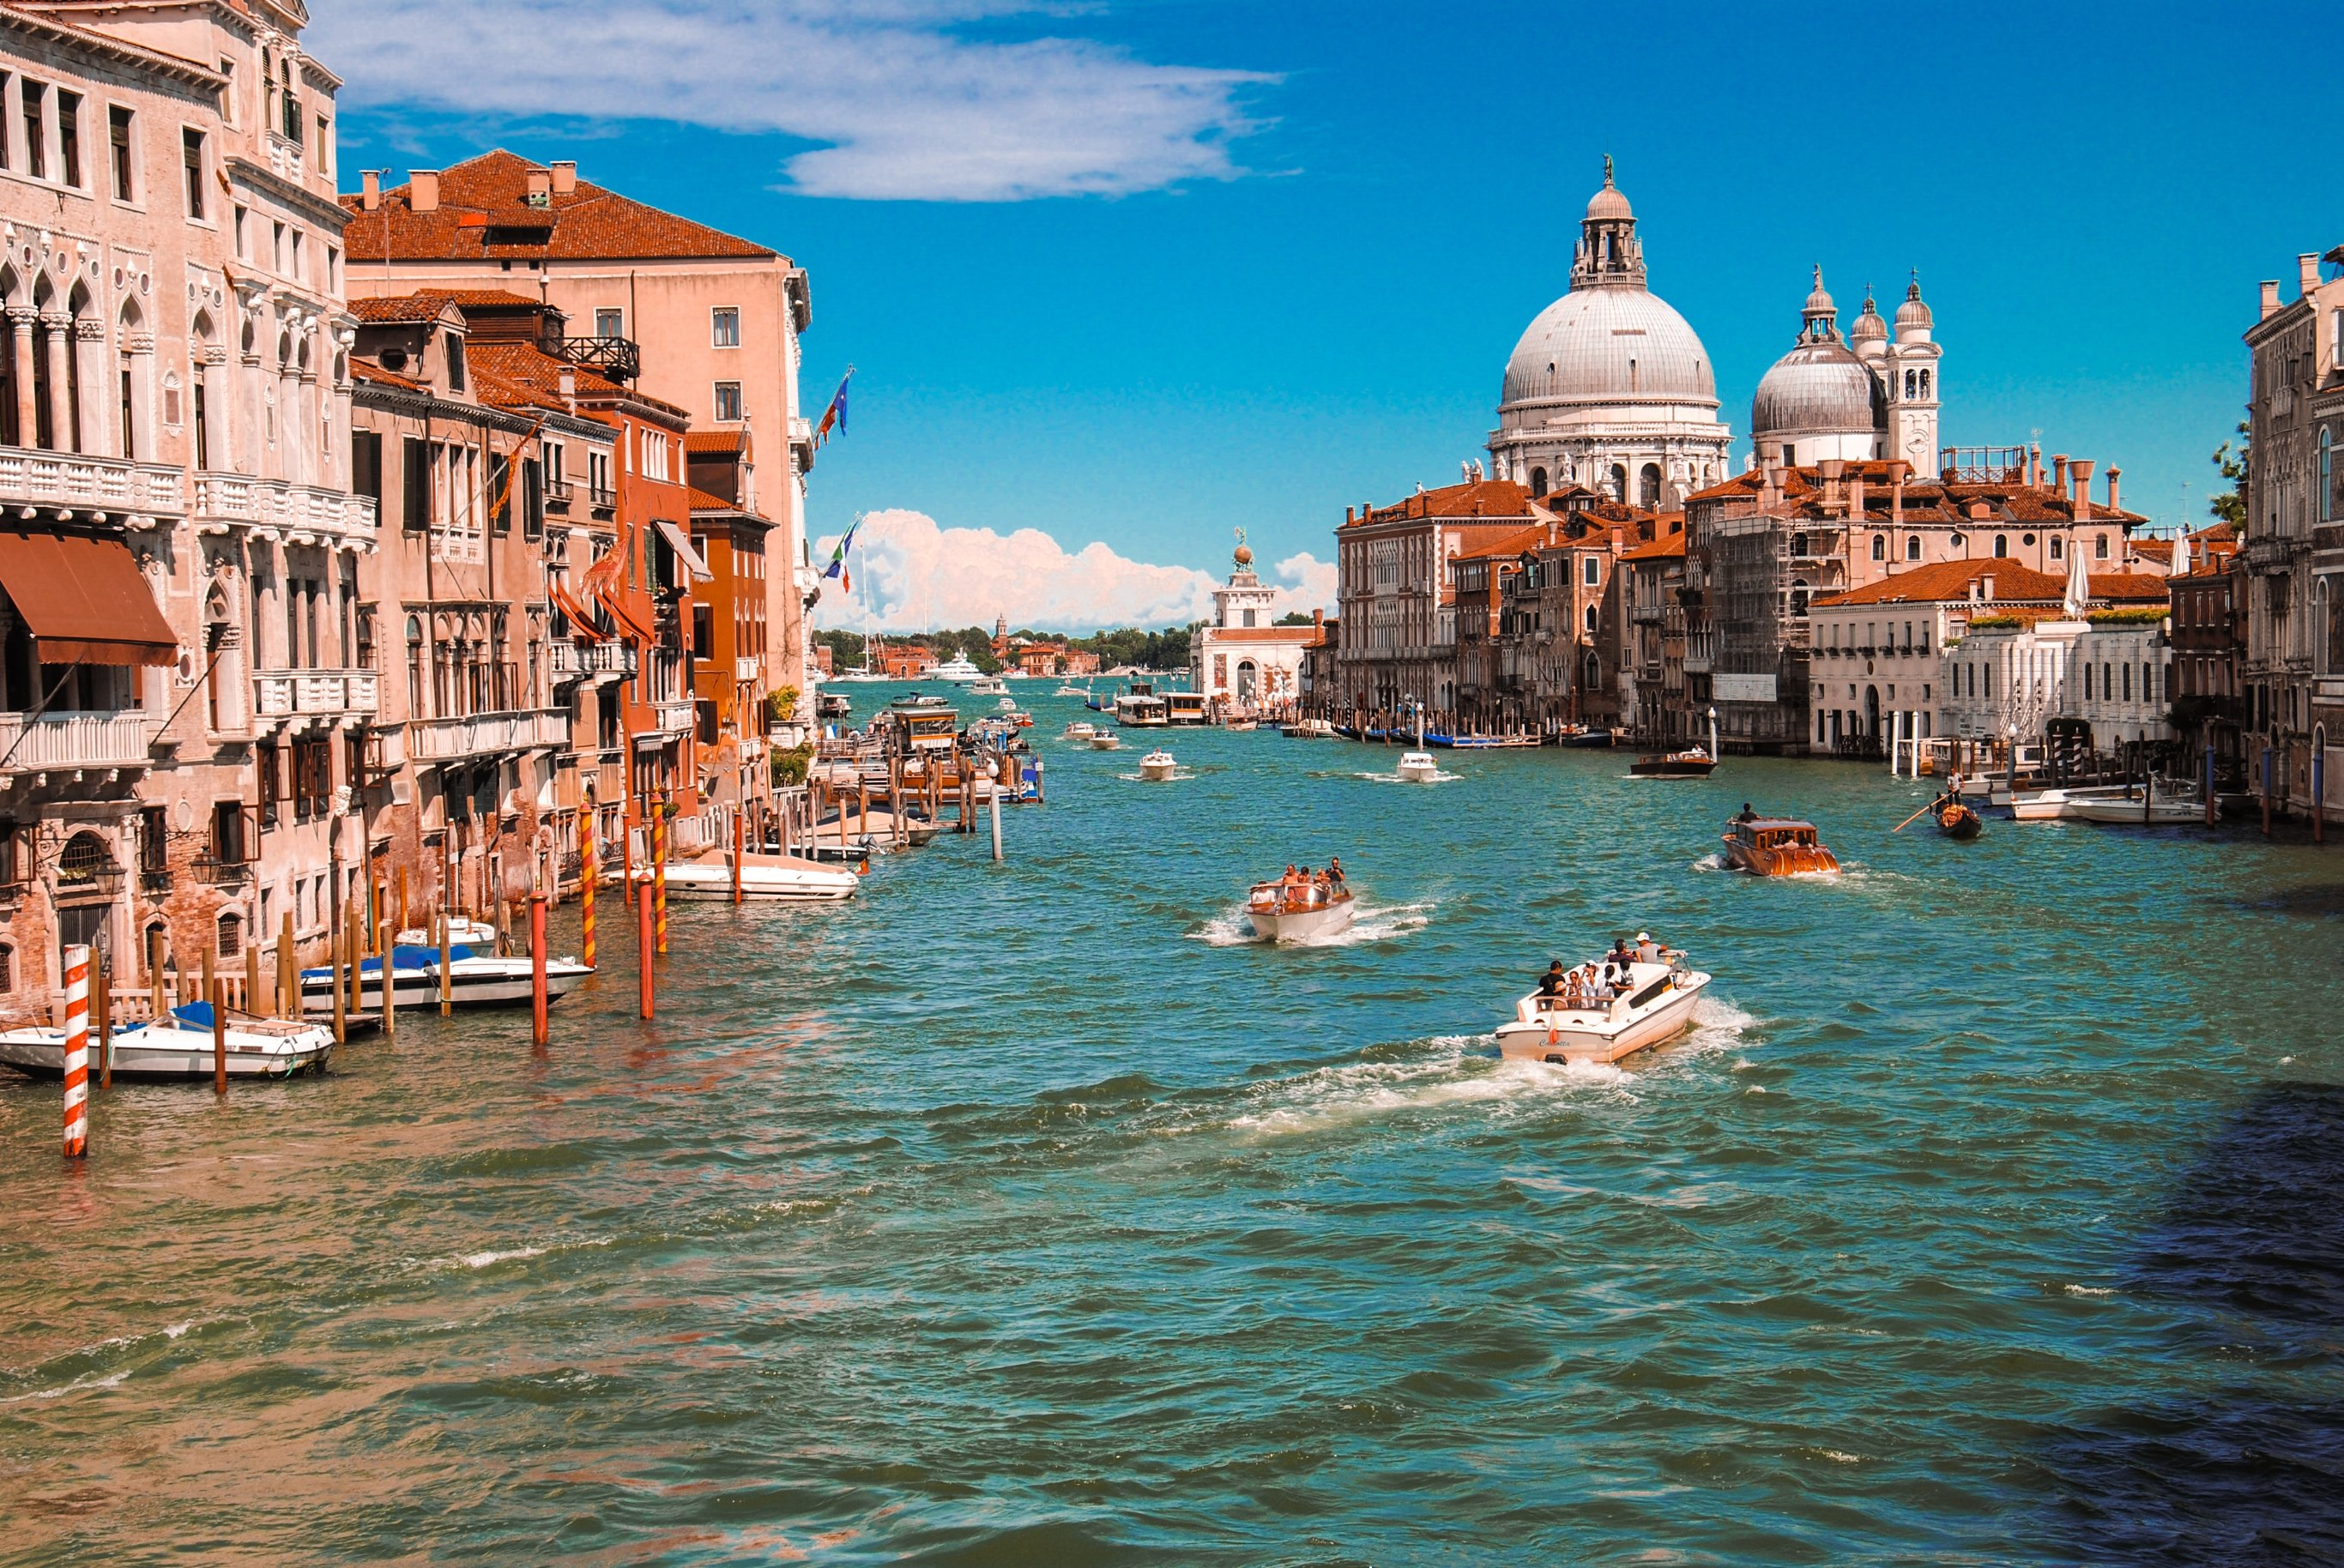 7-Day Milan, Venice and Florence - Italy Itinerary